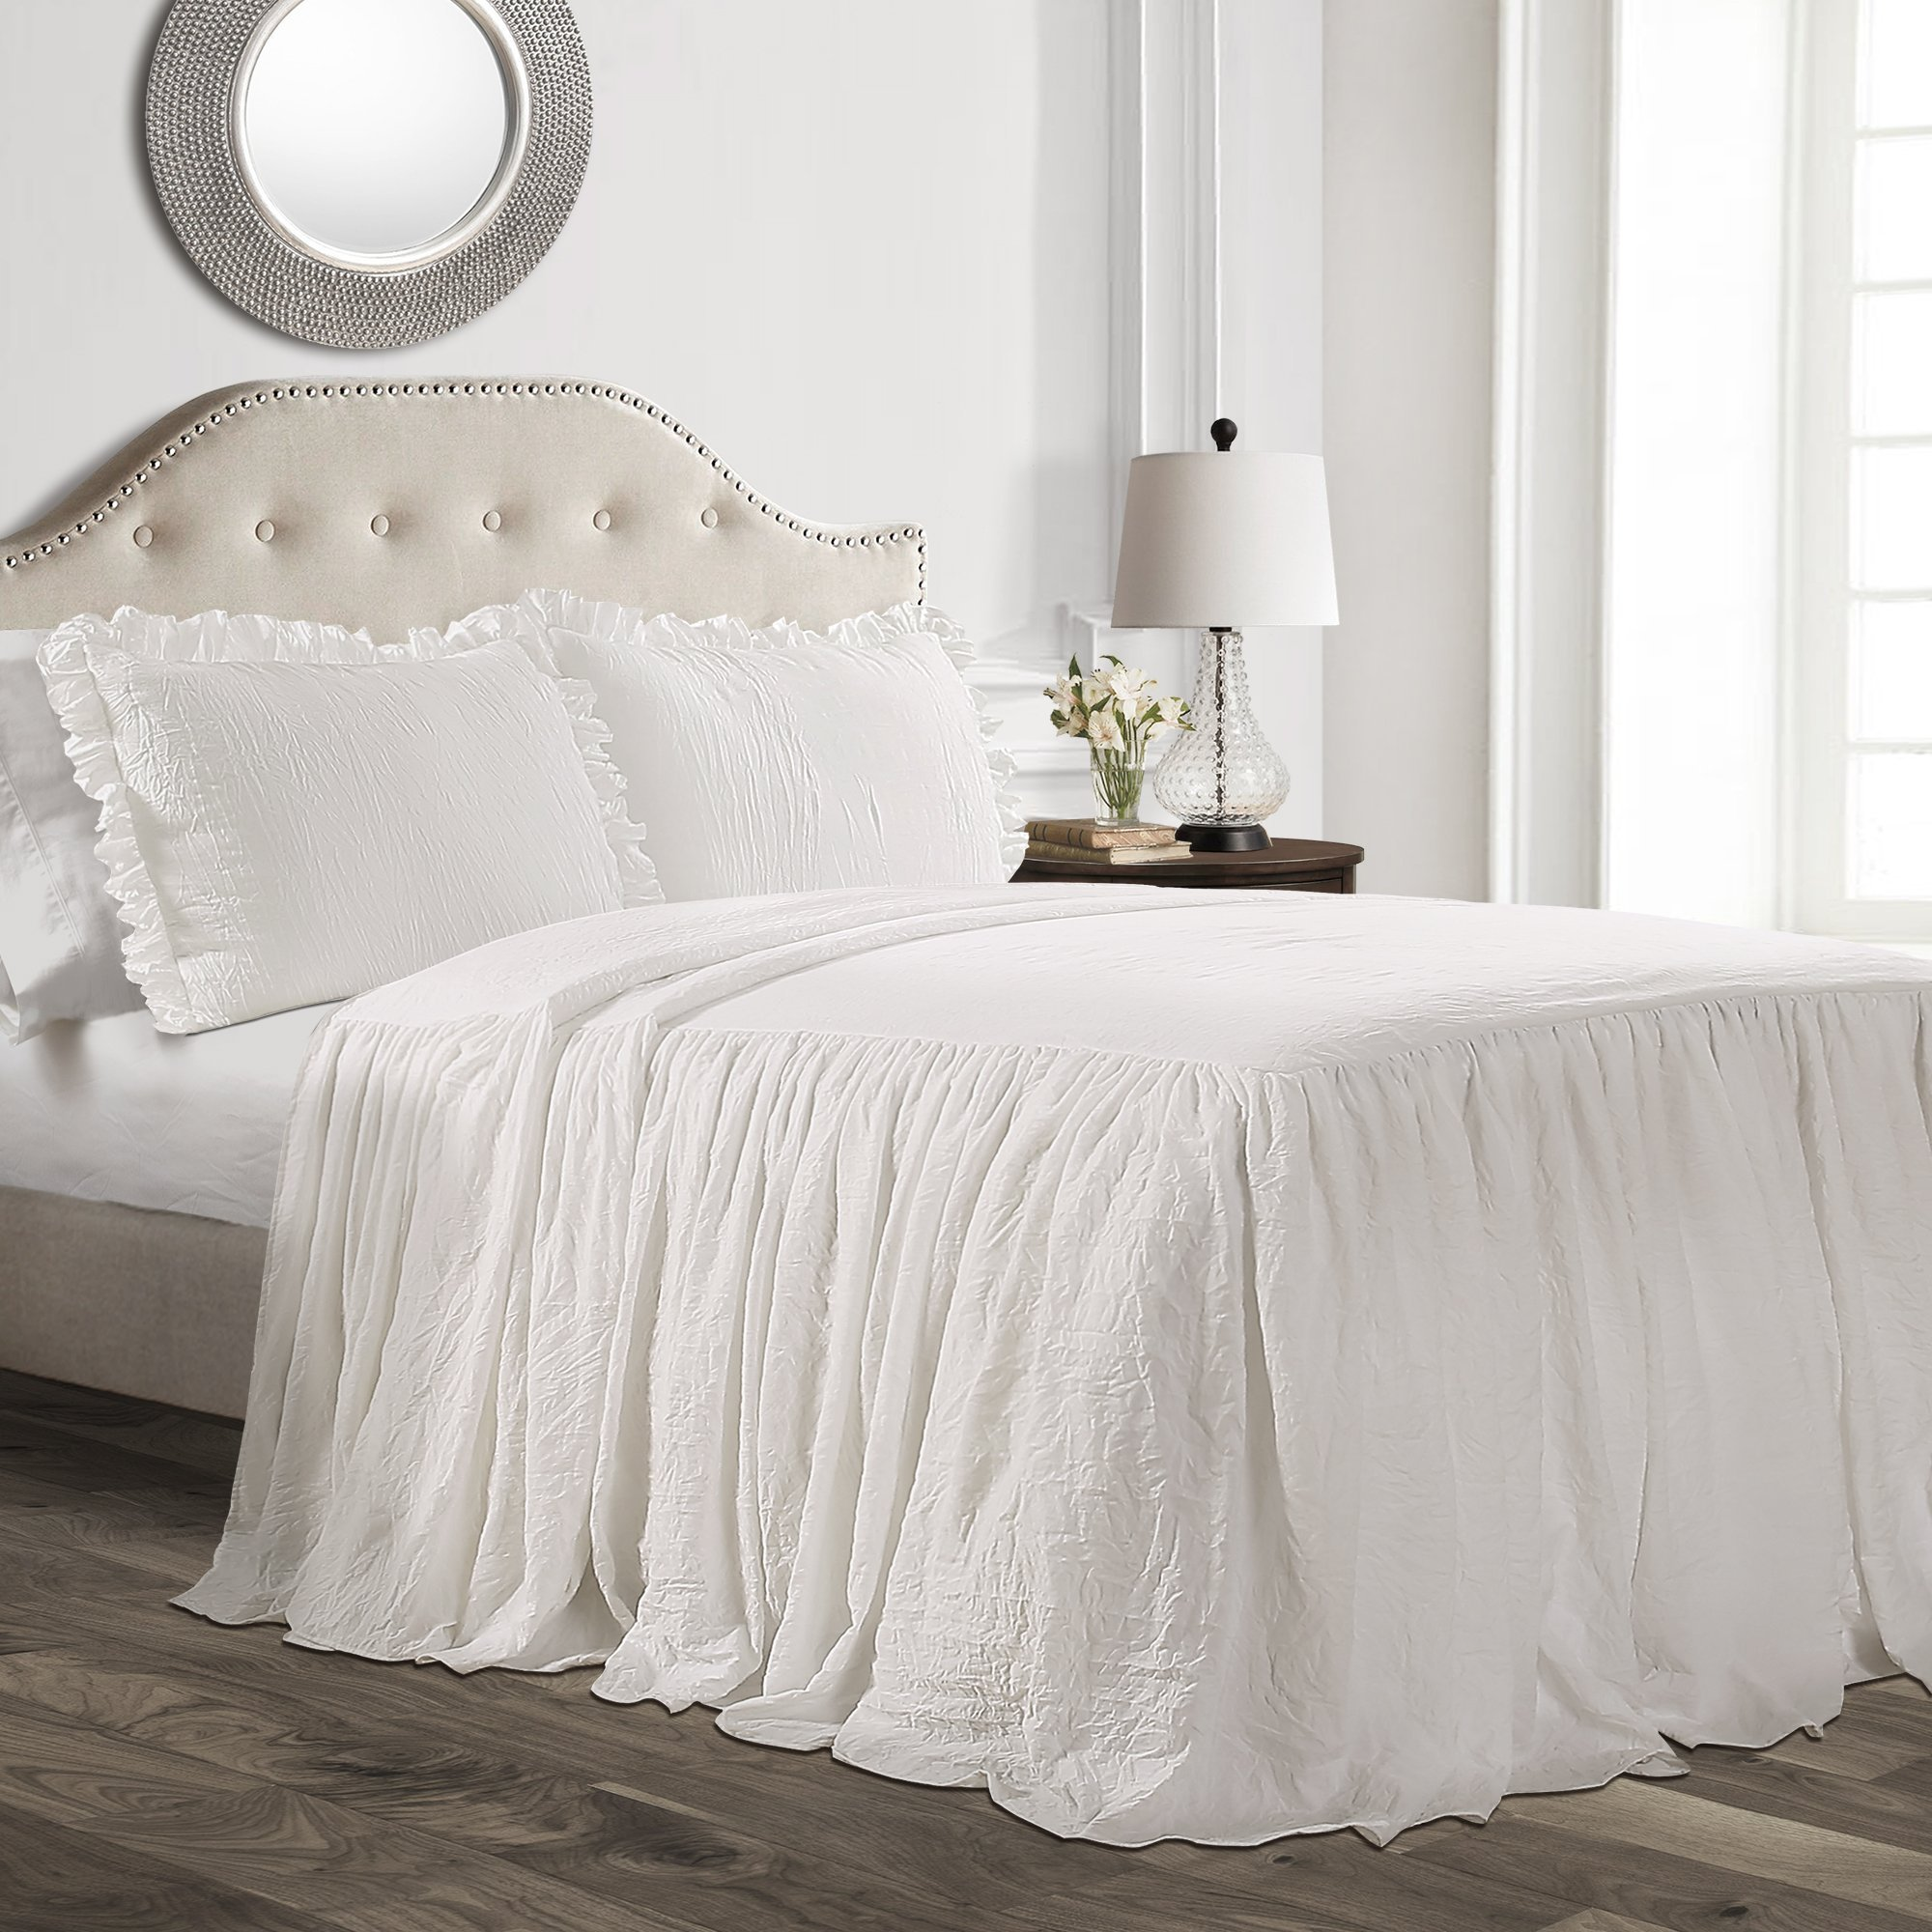 Lush Decor Ruffle Skirt 3 Piece Bedspread Set, King, White